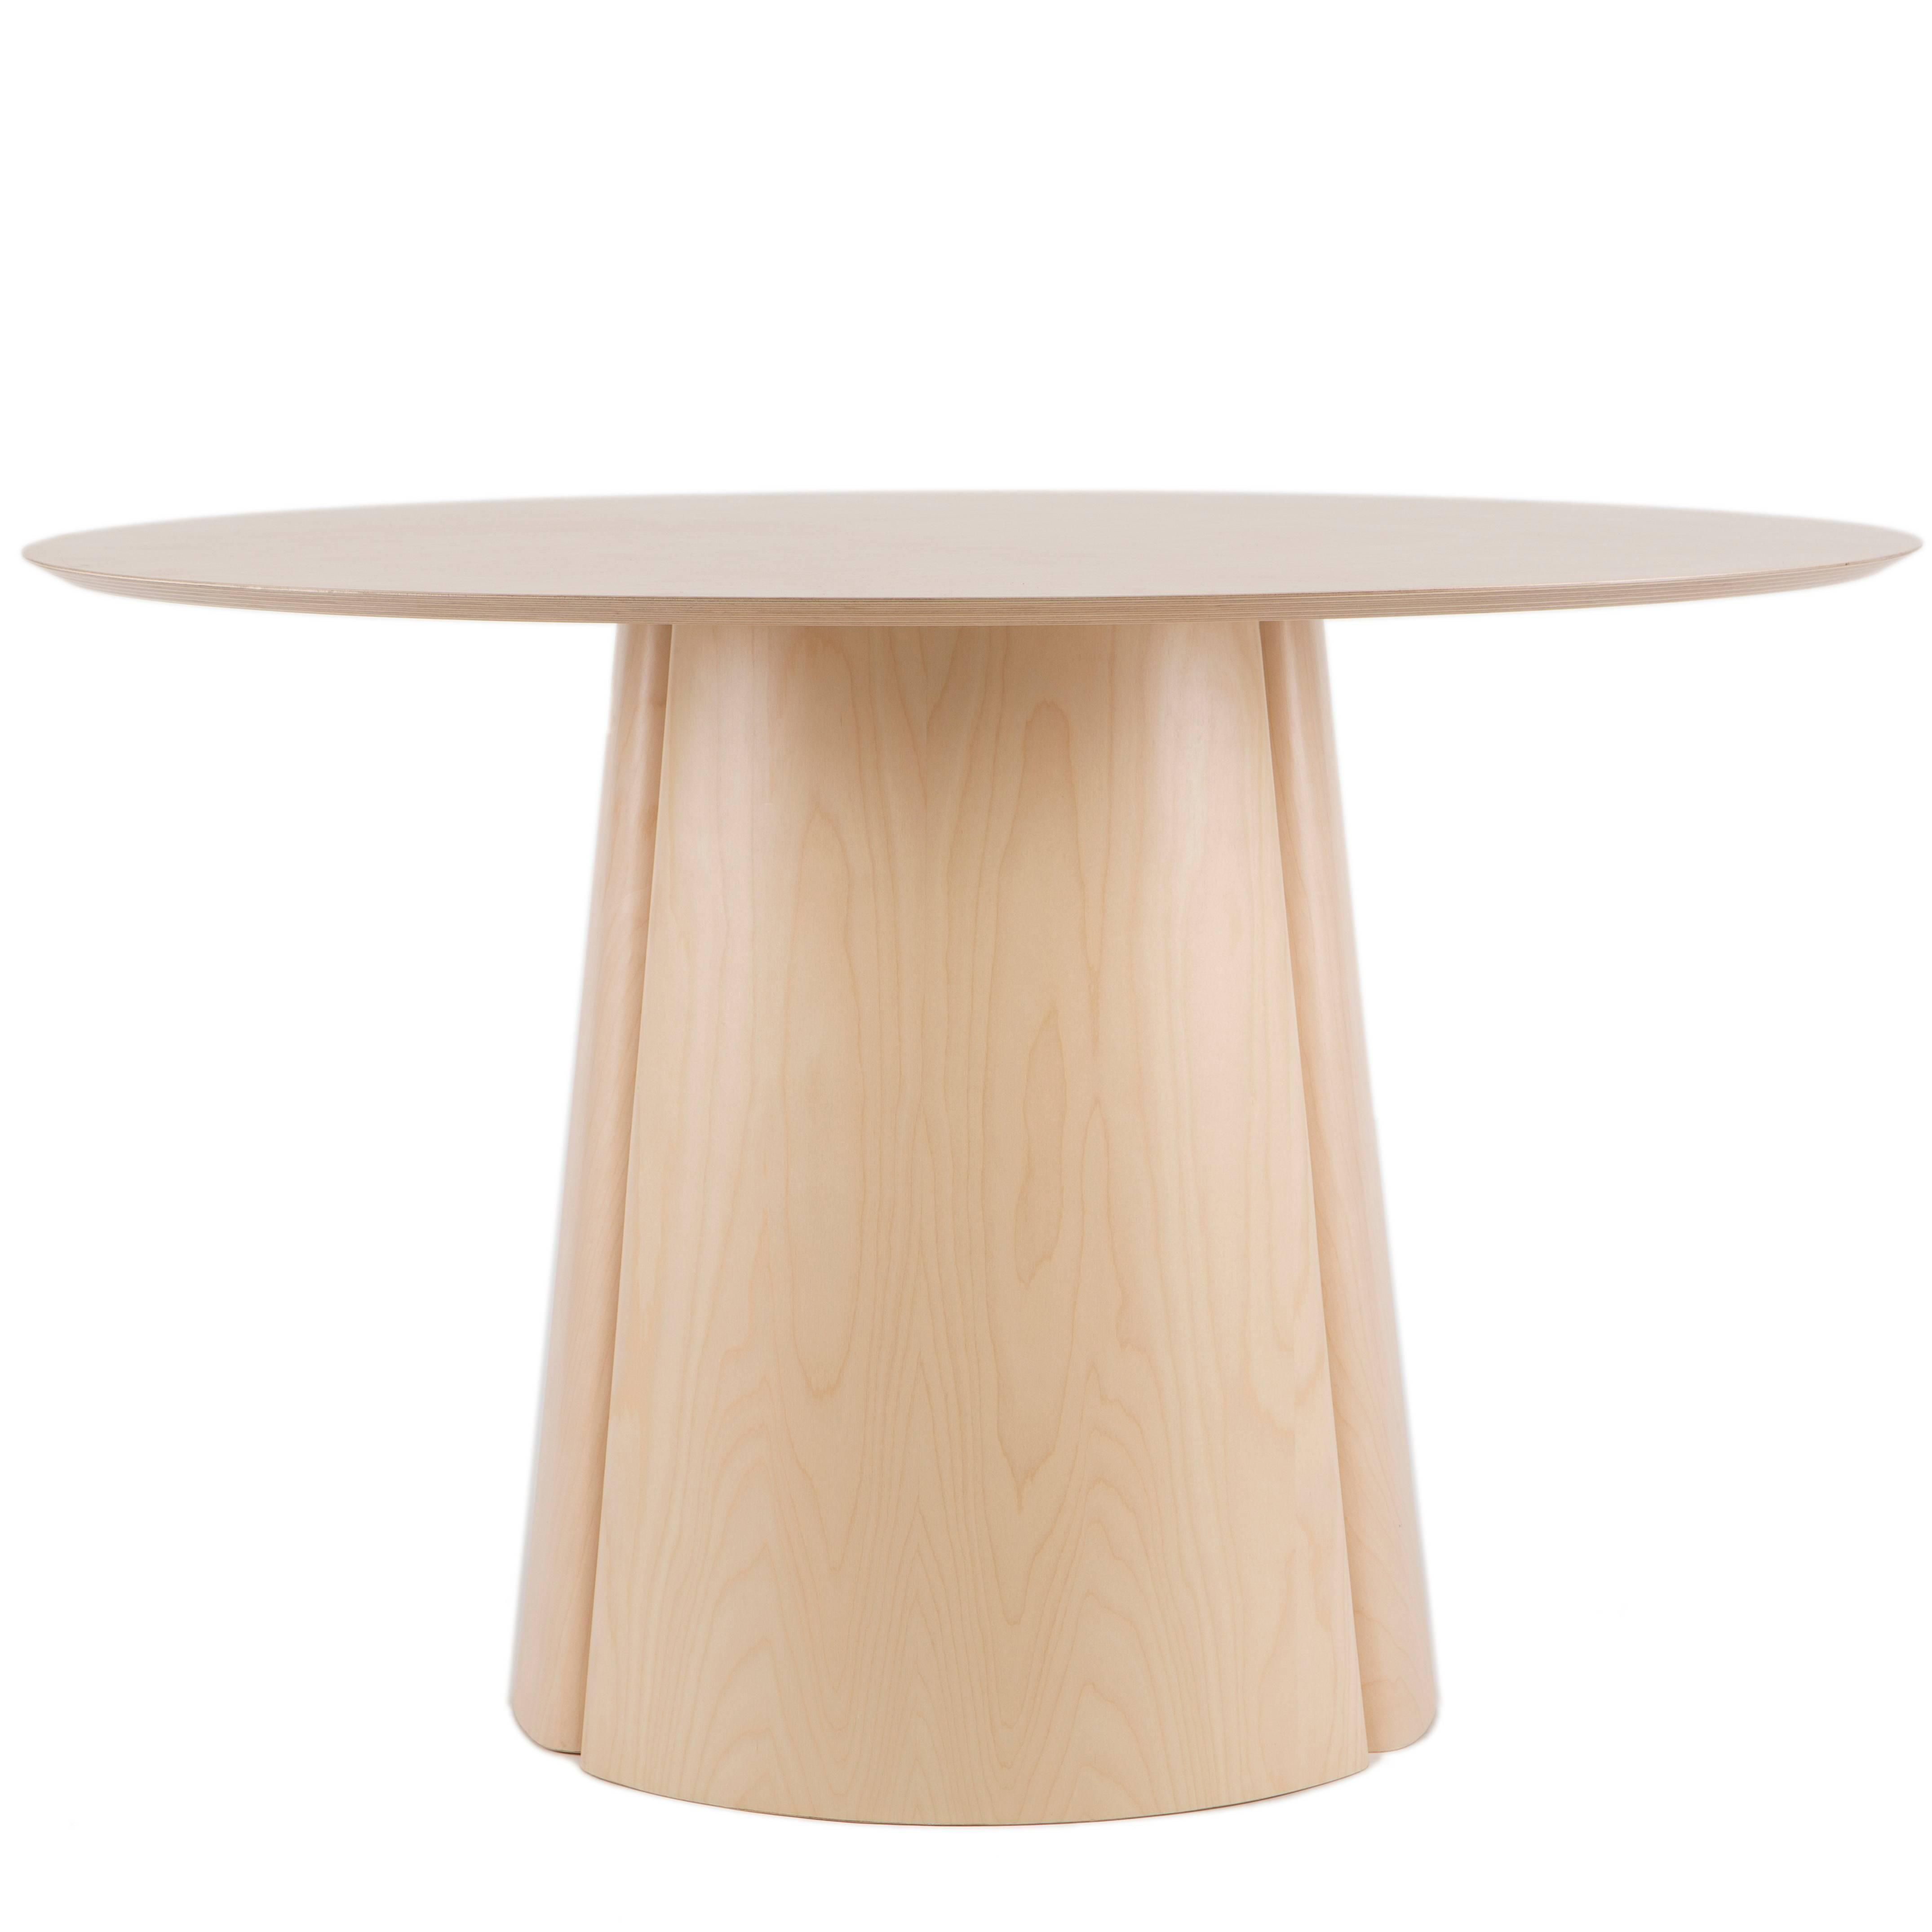 Round Black Stained Maple Column Dining Table By Blacktable Studio Wood Dining Room Table Dining Room Table Wood Dining Room